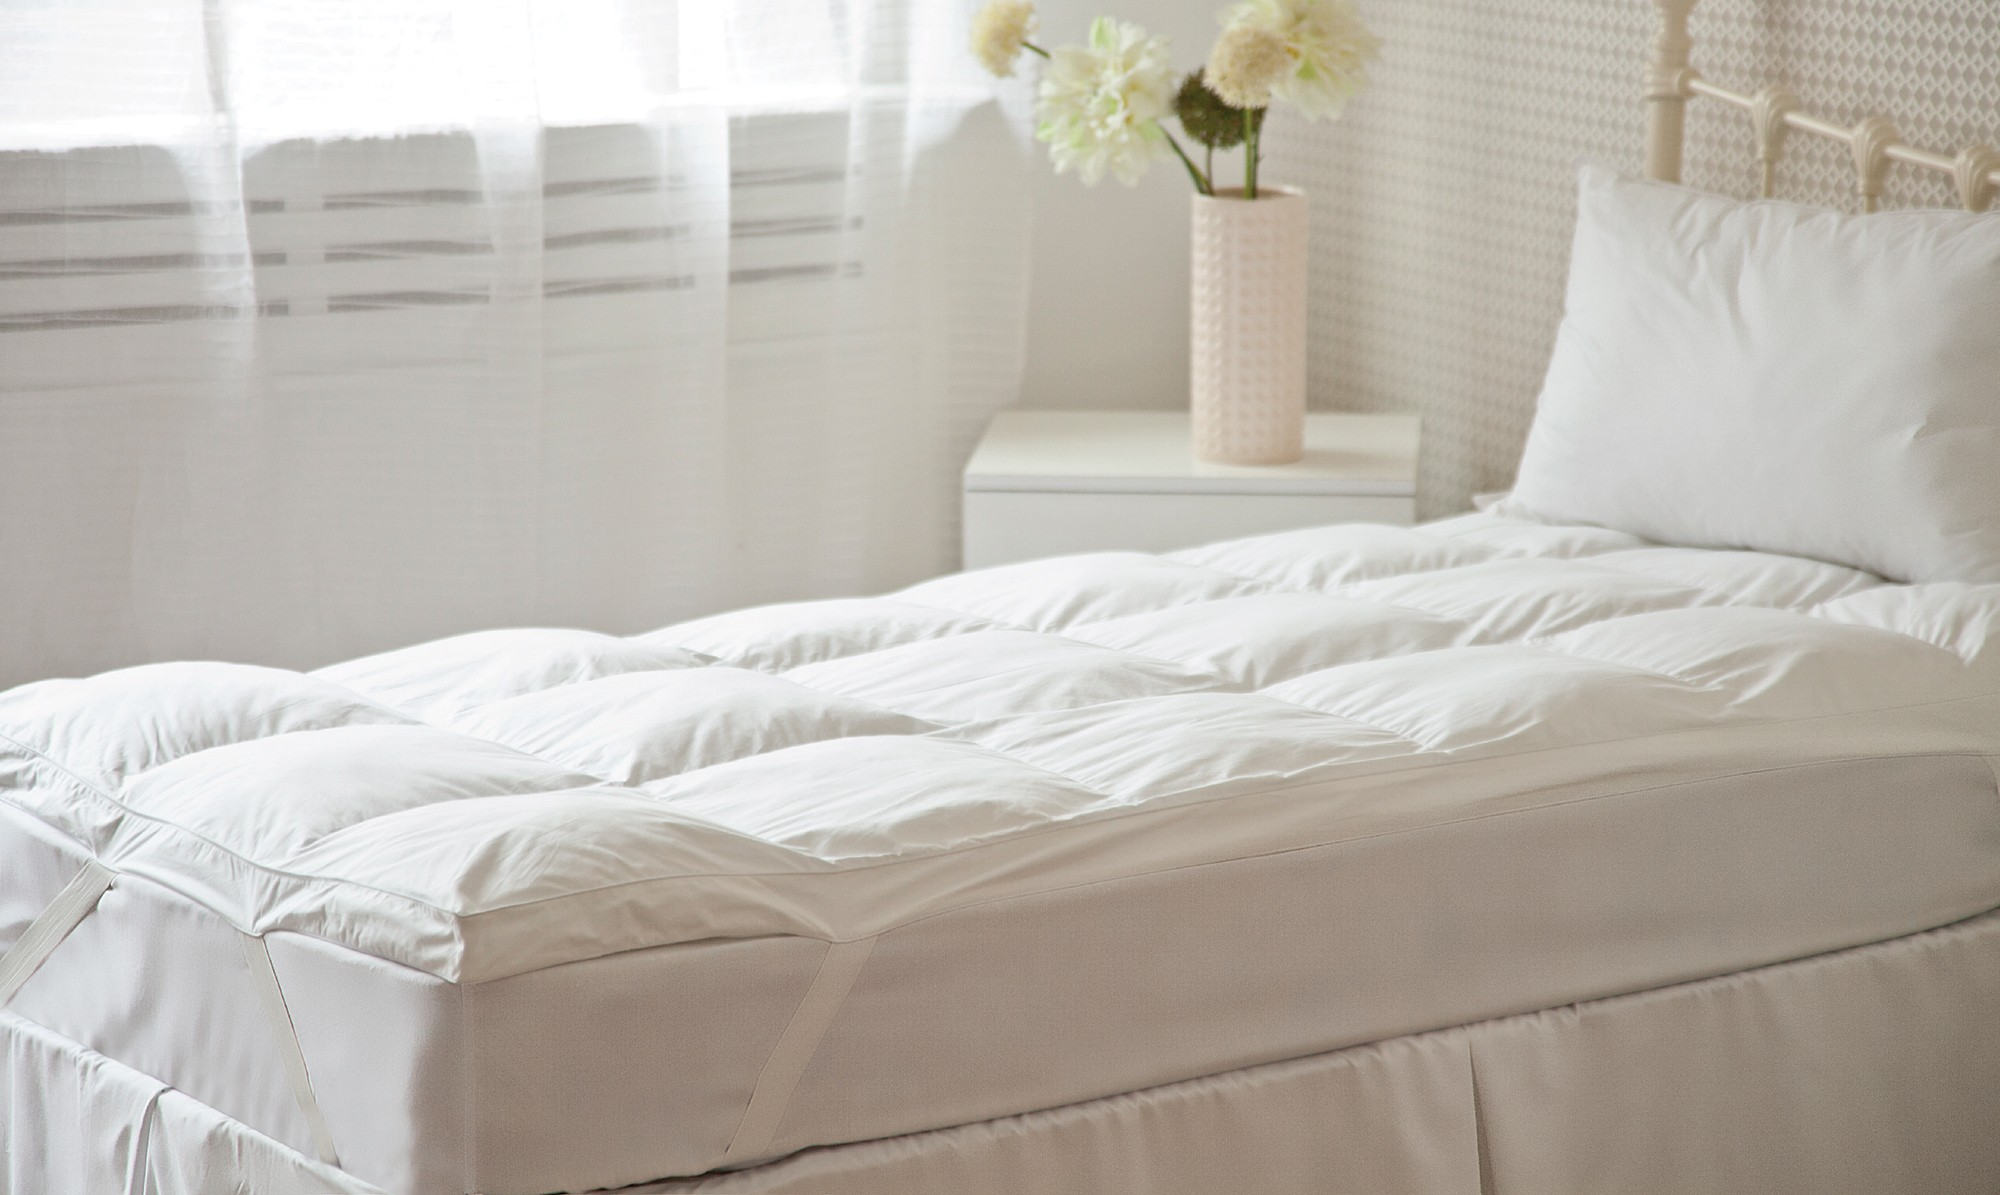 Hotel clusterfill mattress topper